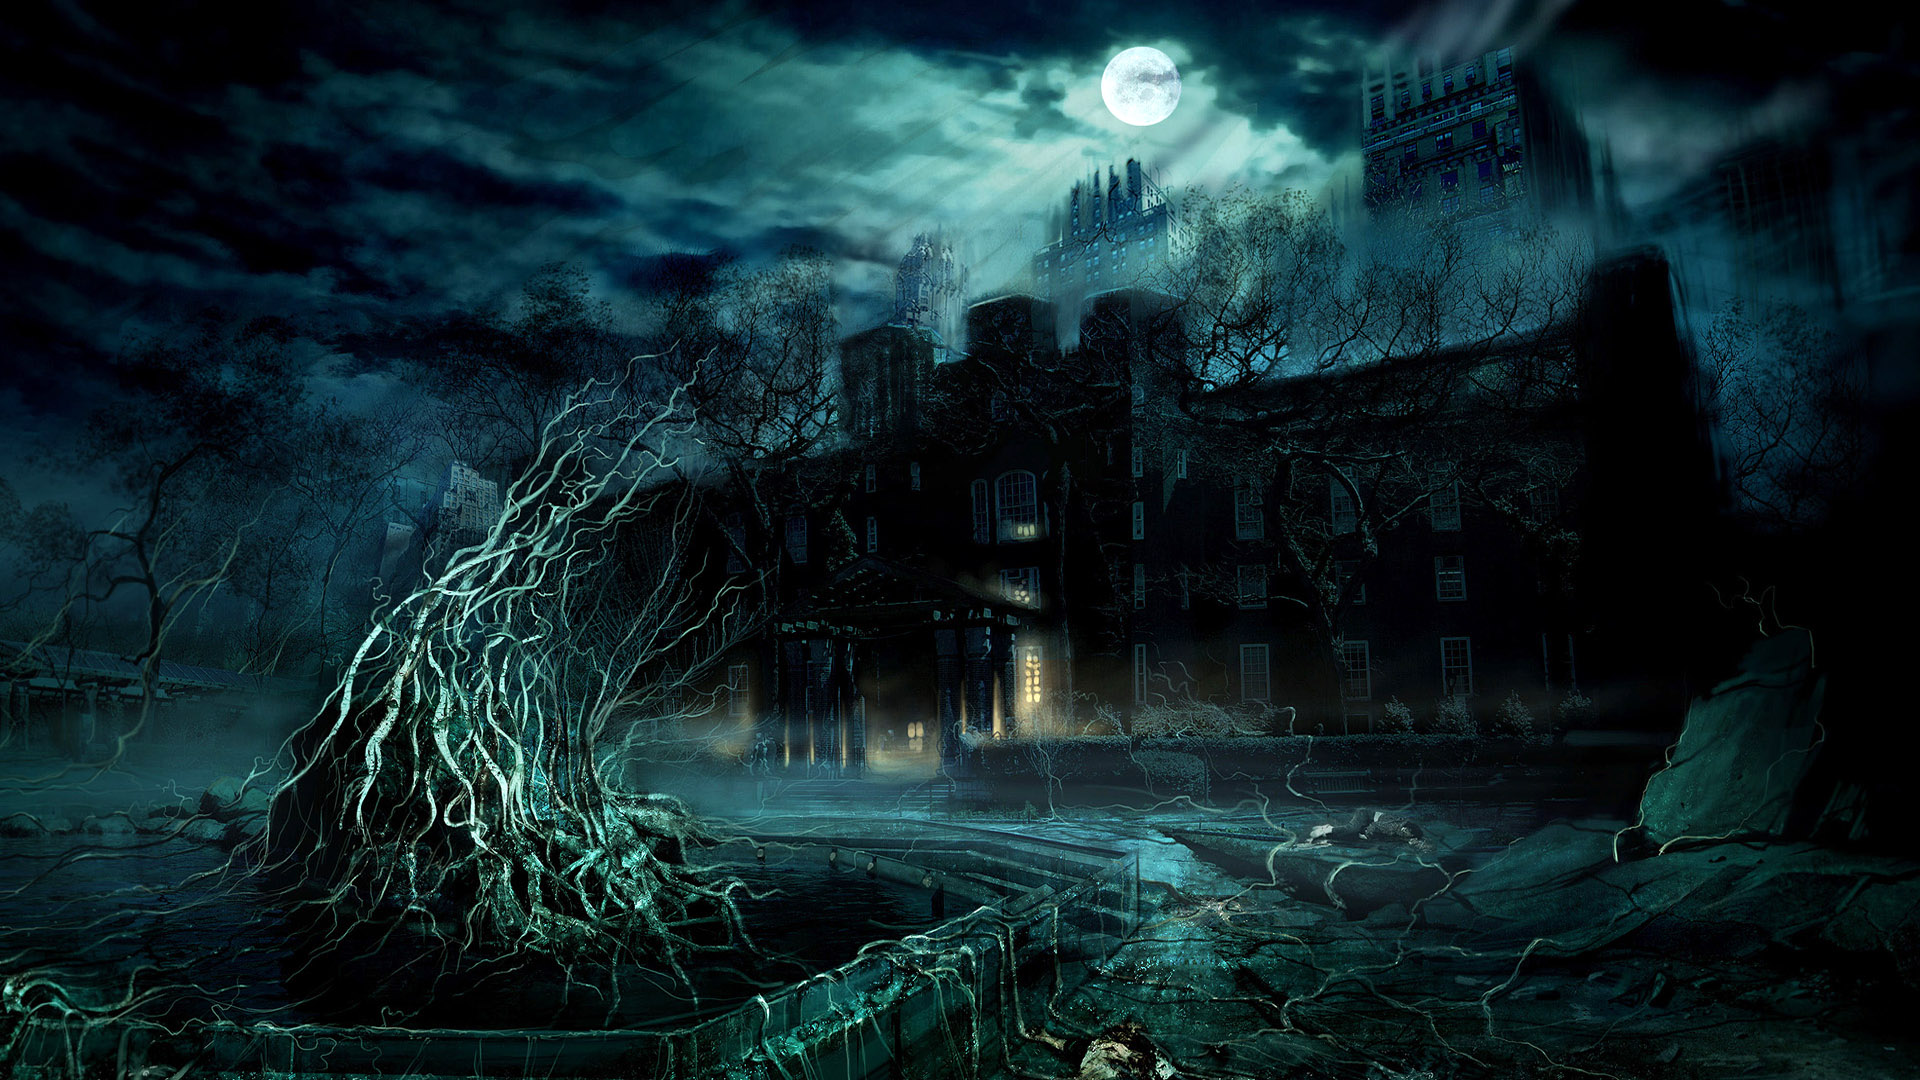 PS3 Wallpaper Installation Directions 1920x1080